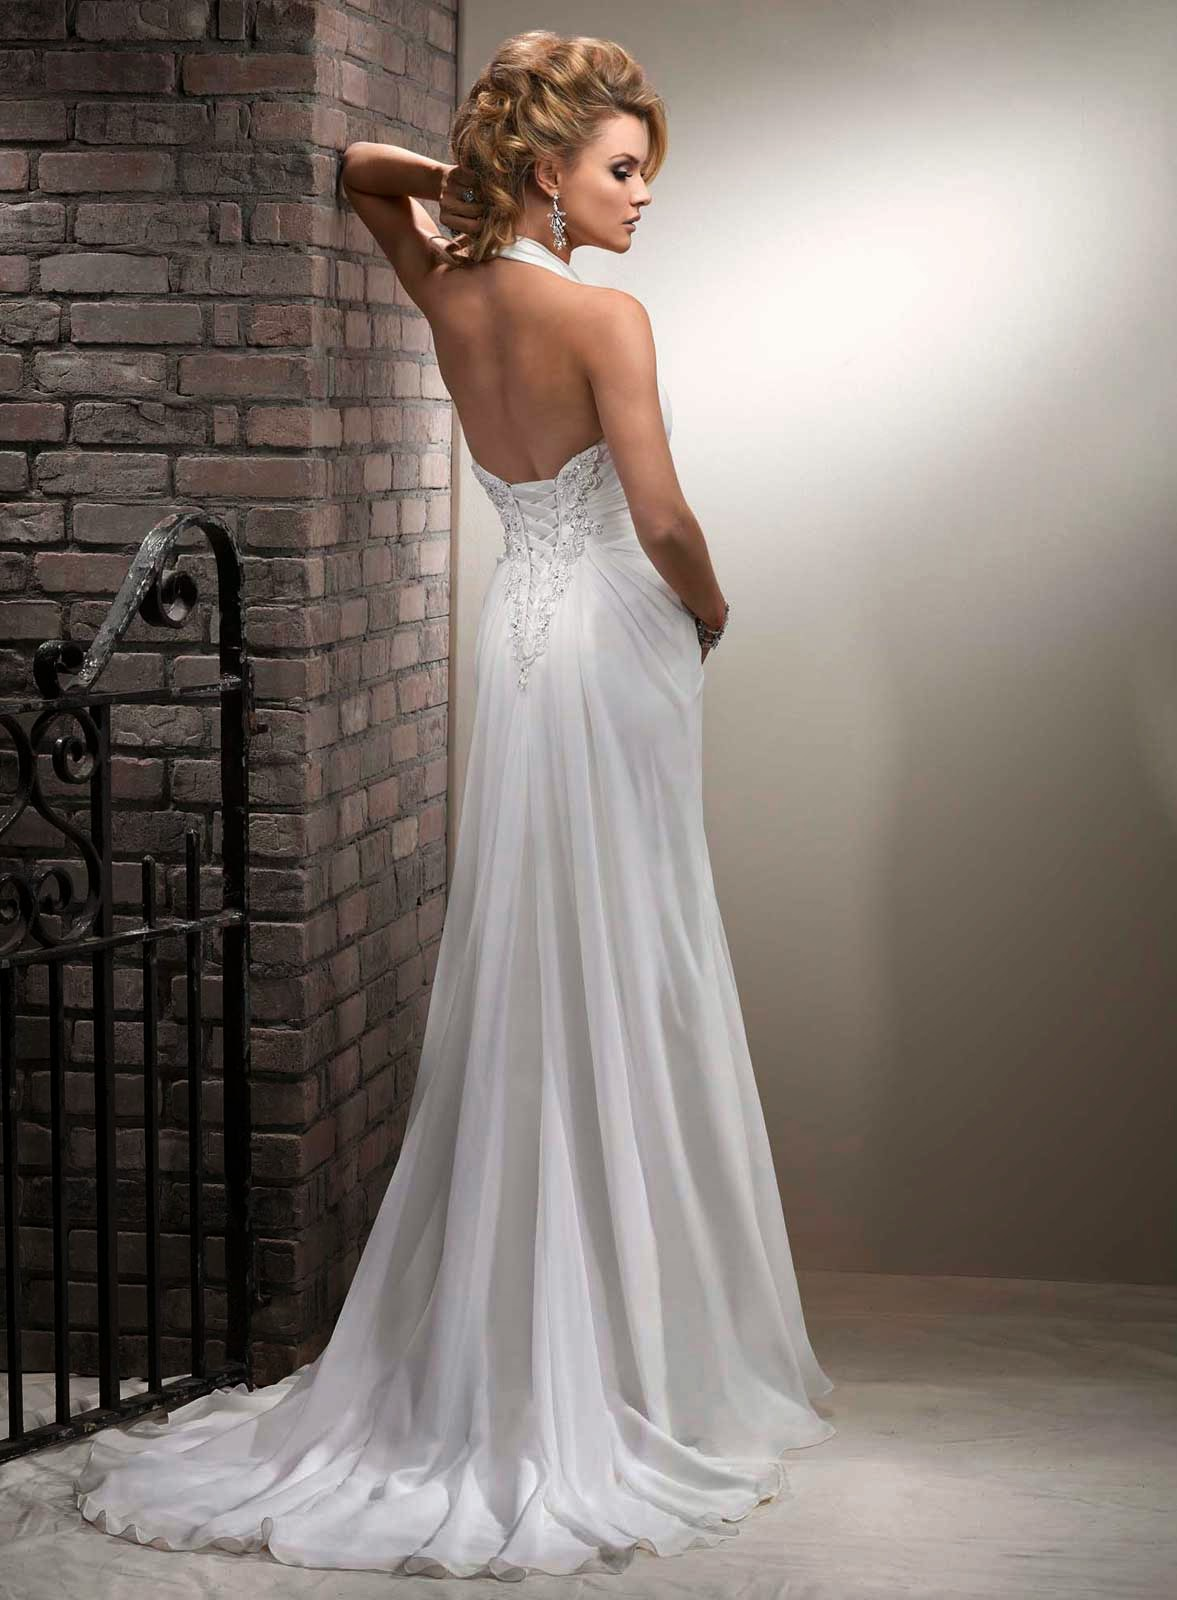 Casual wedding dresses ideas for older brides for Wedding dress for casual wedding